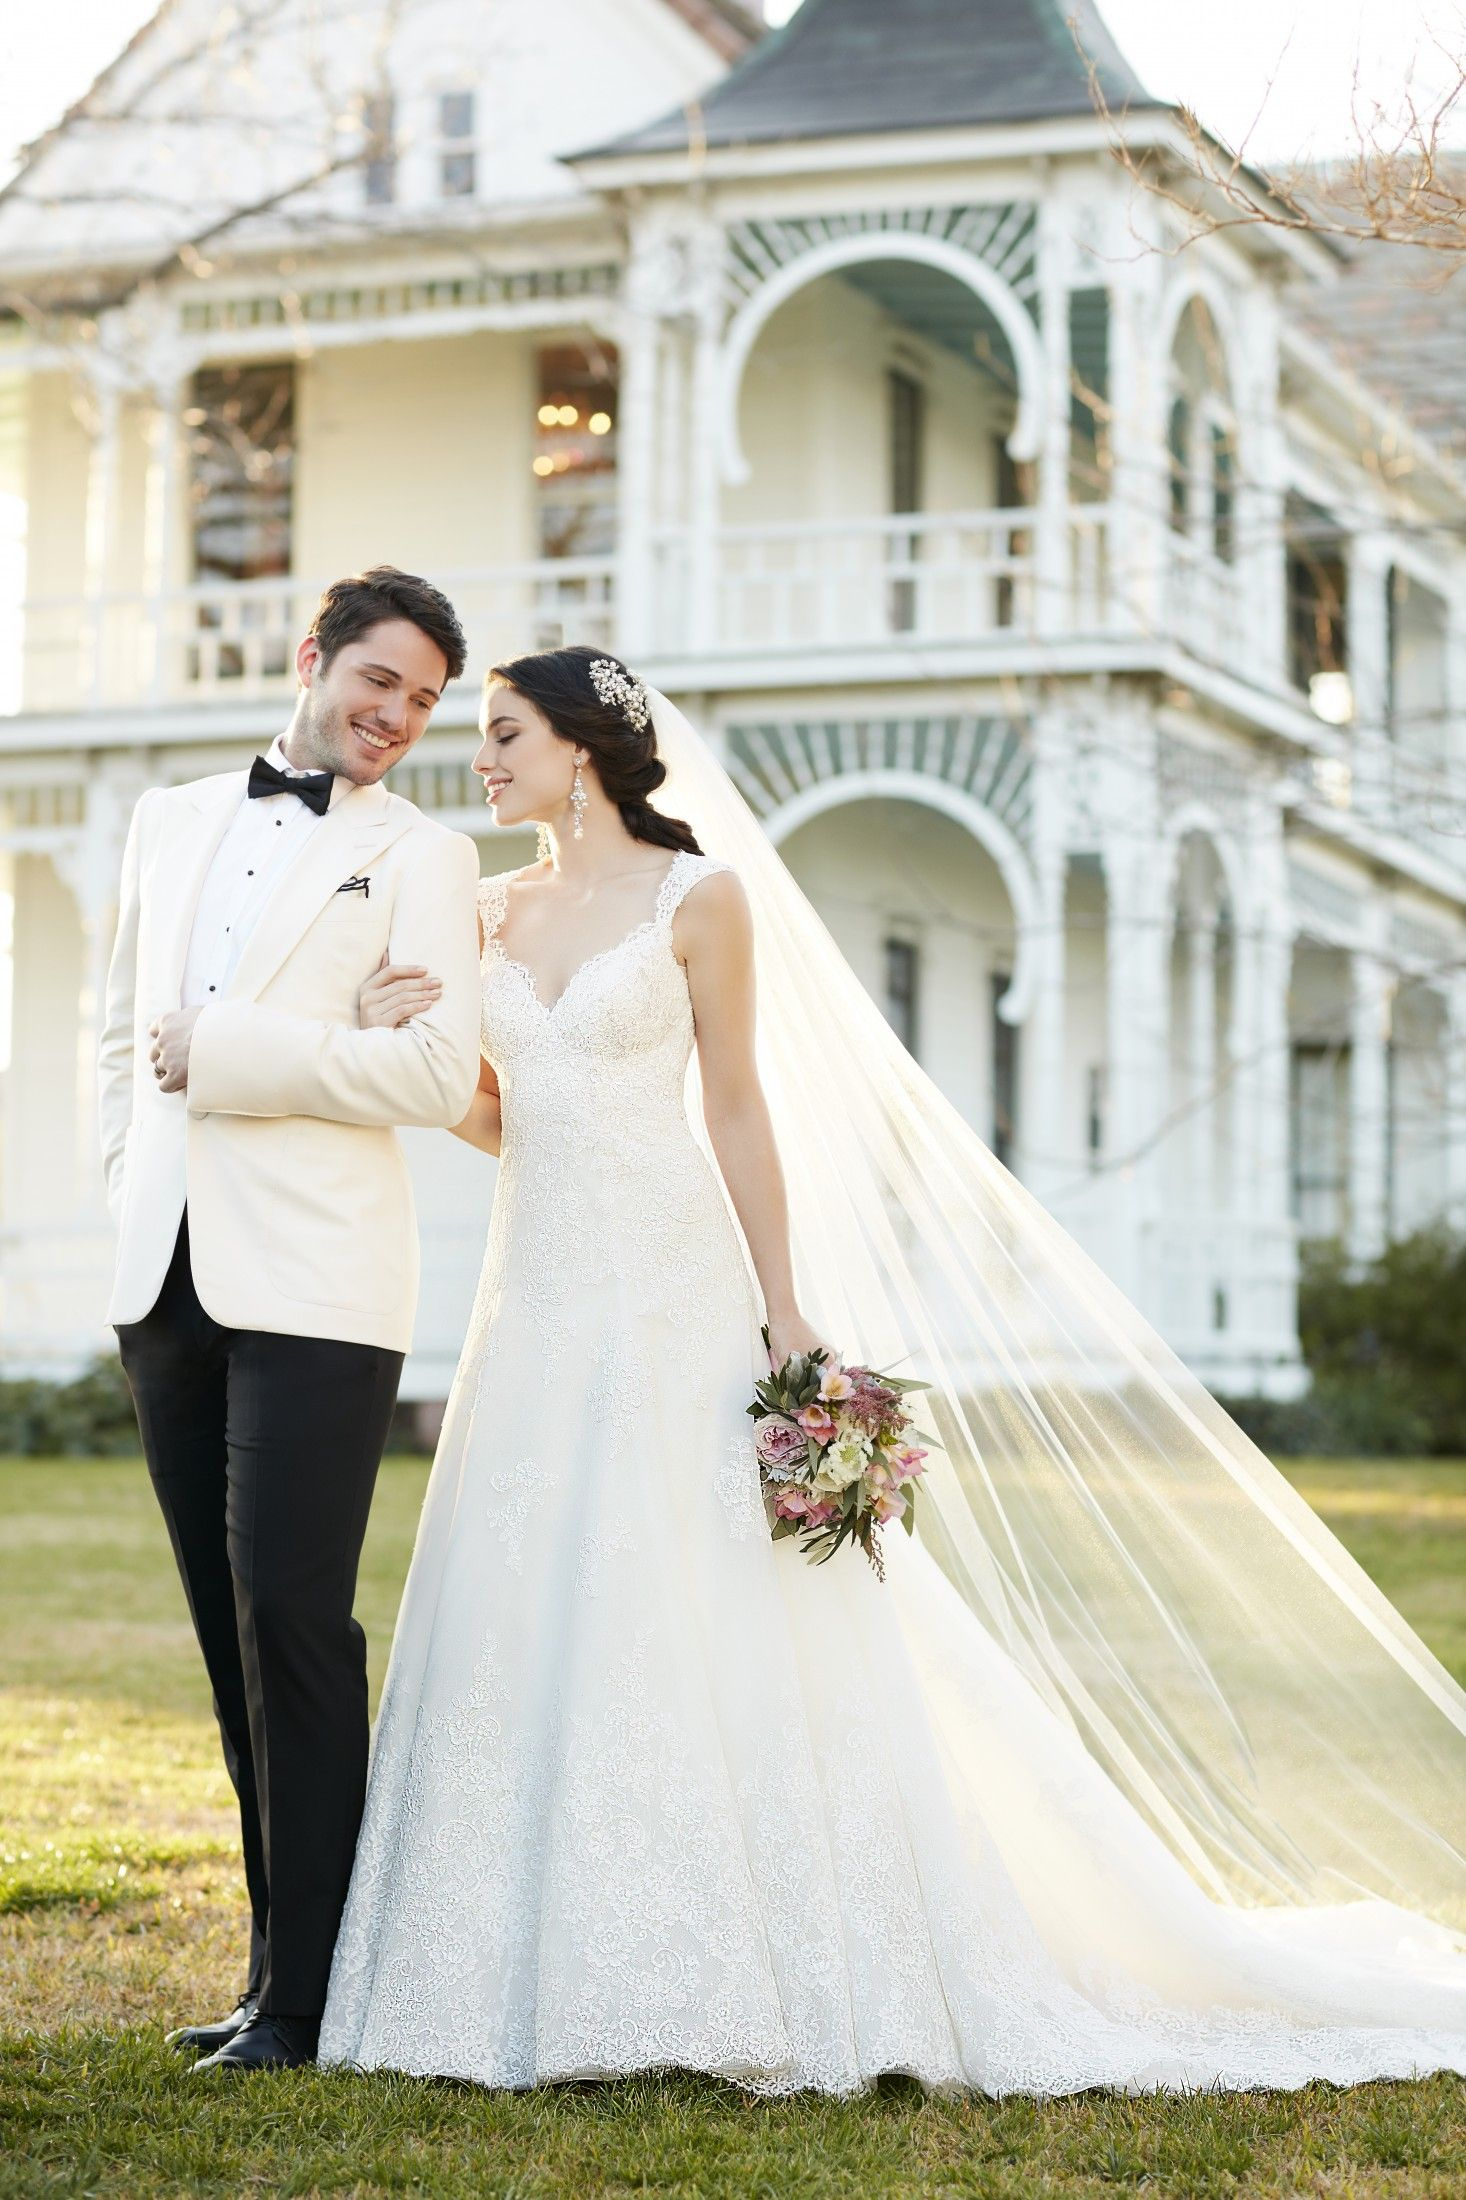 This aline bridal gown is made from vintagestyle lace on whisper